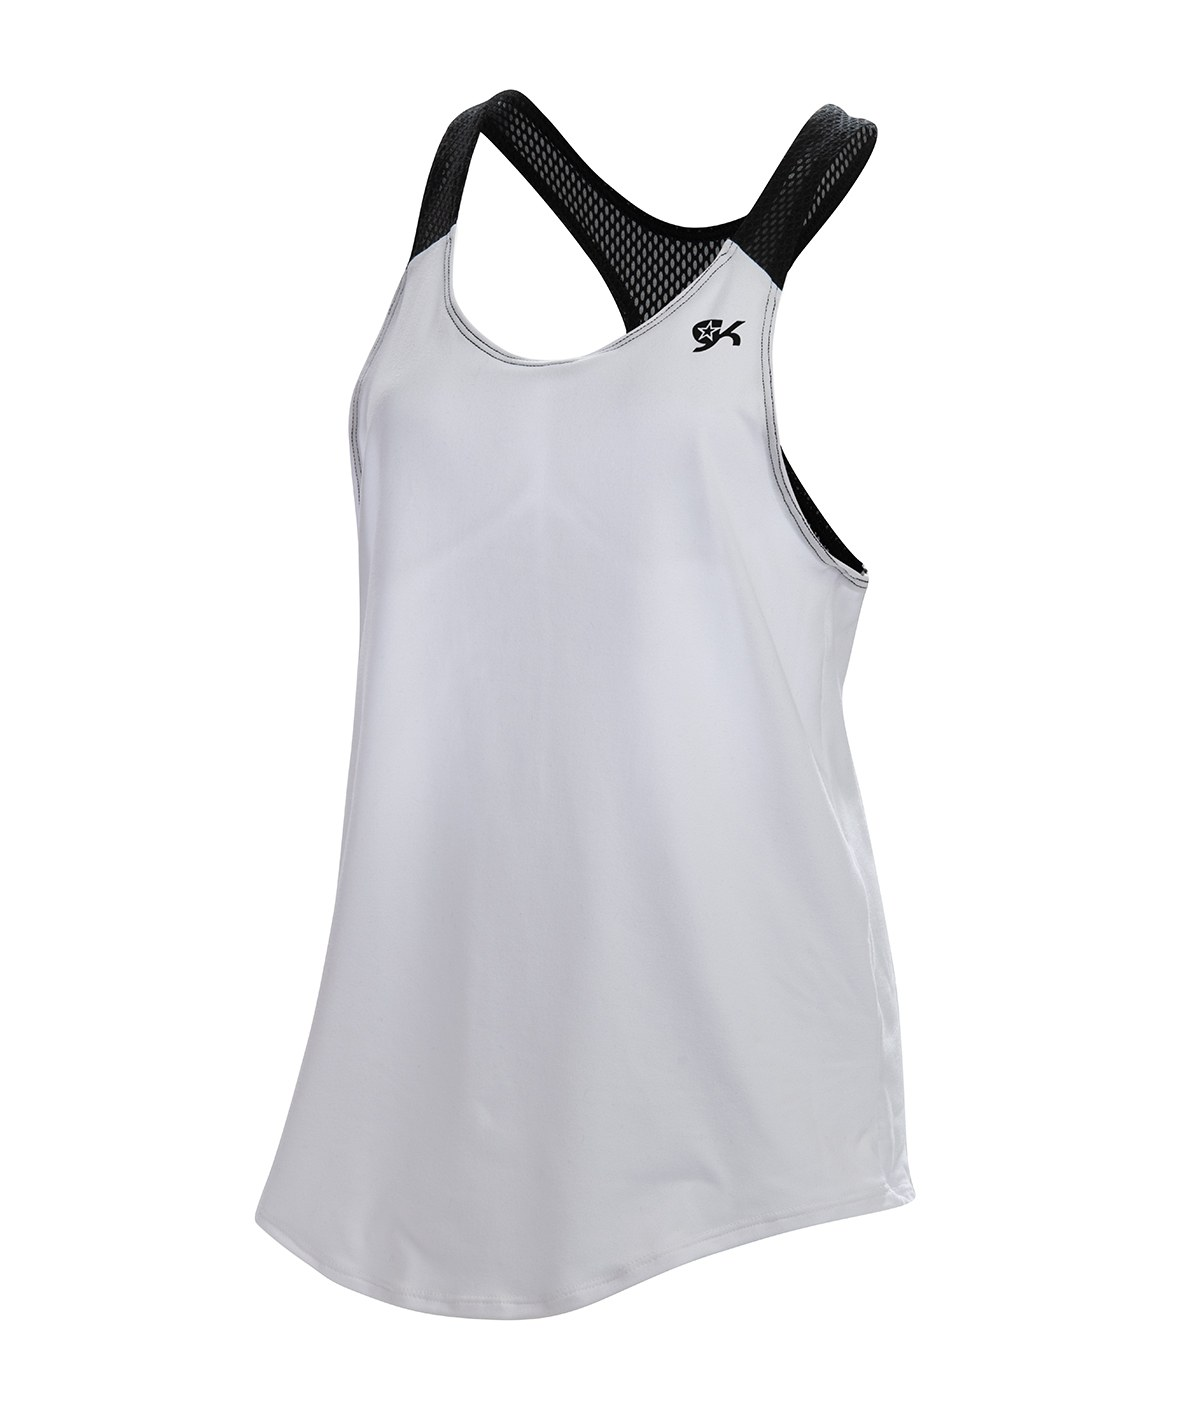 GK All Star Hourglass Tank Top